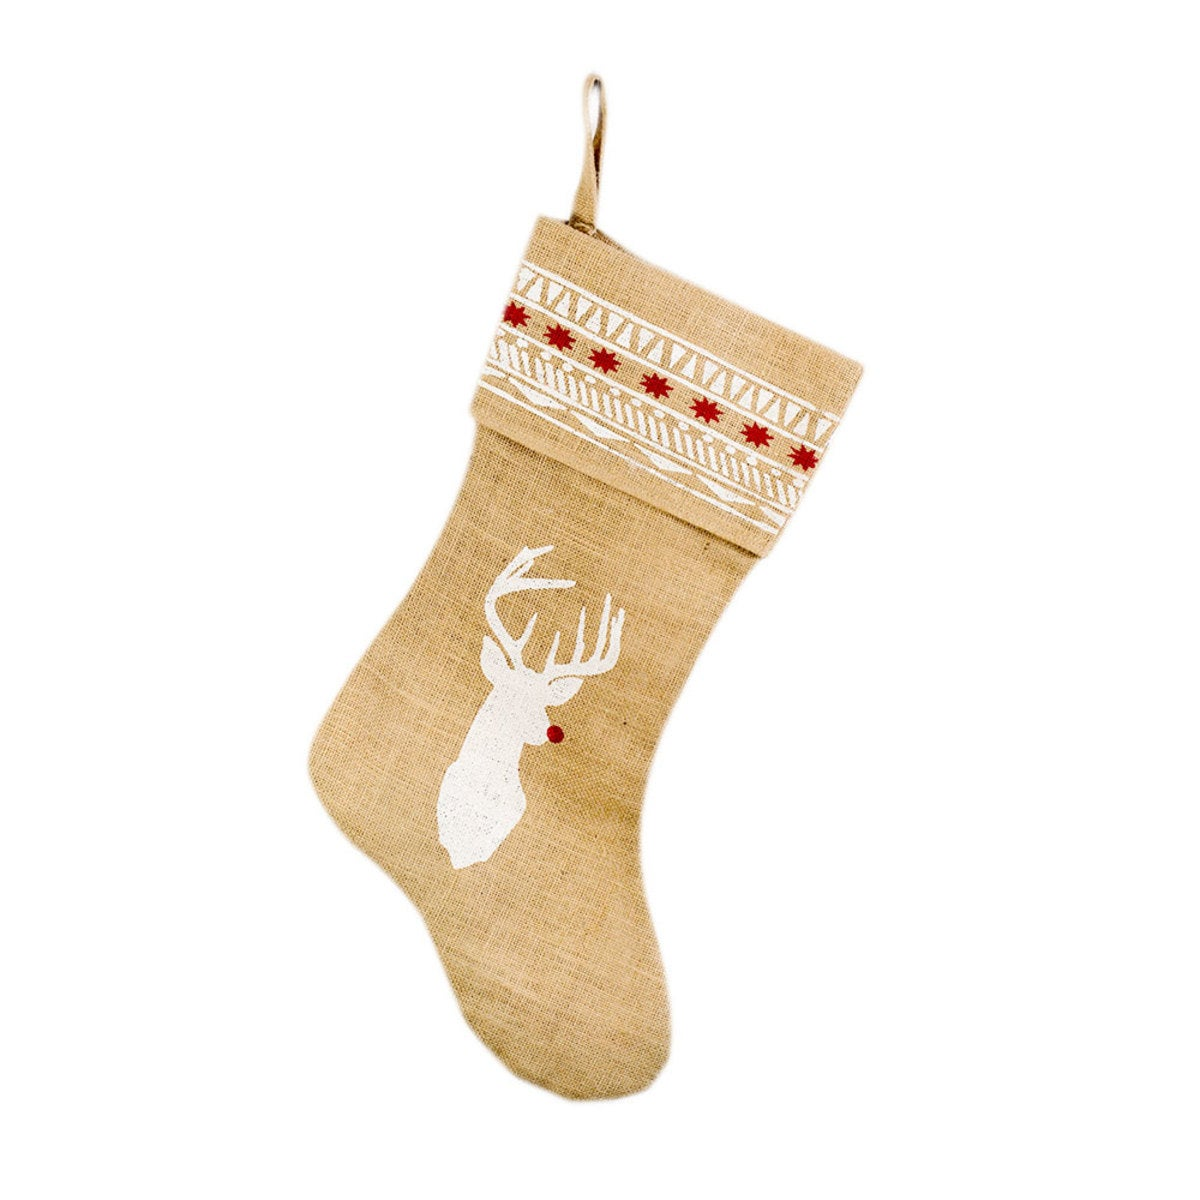 Reindeer Sweater Burlap Stocking